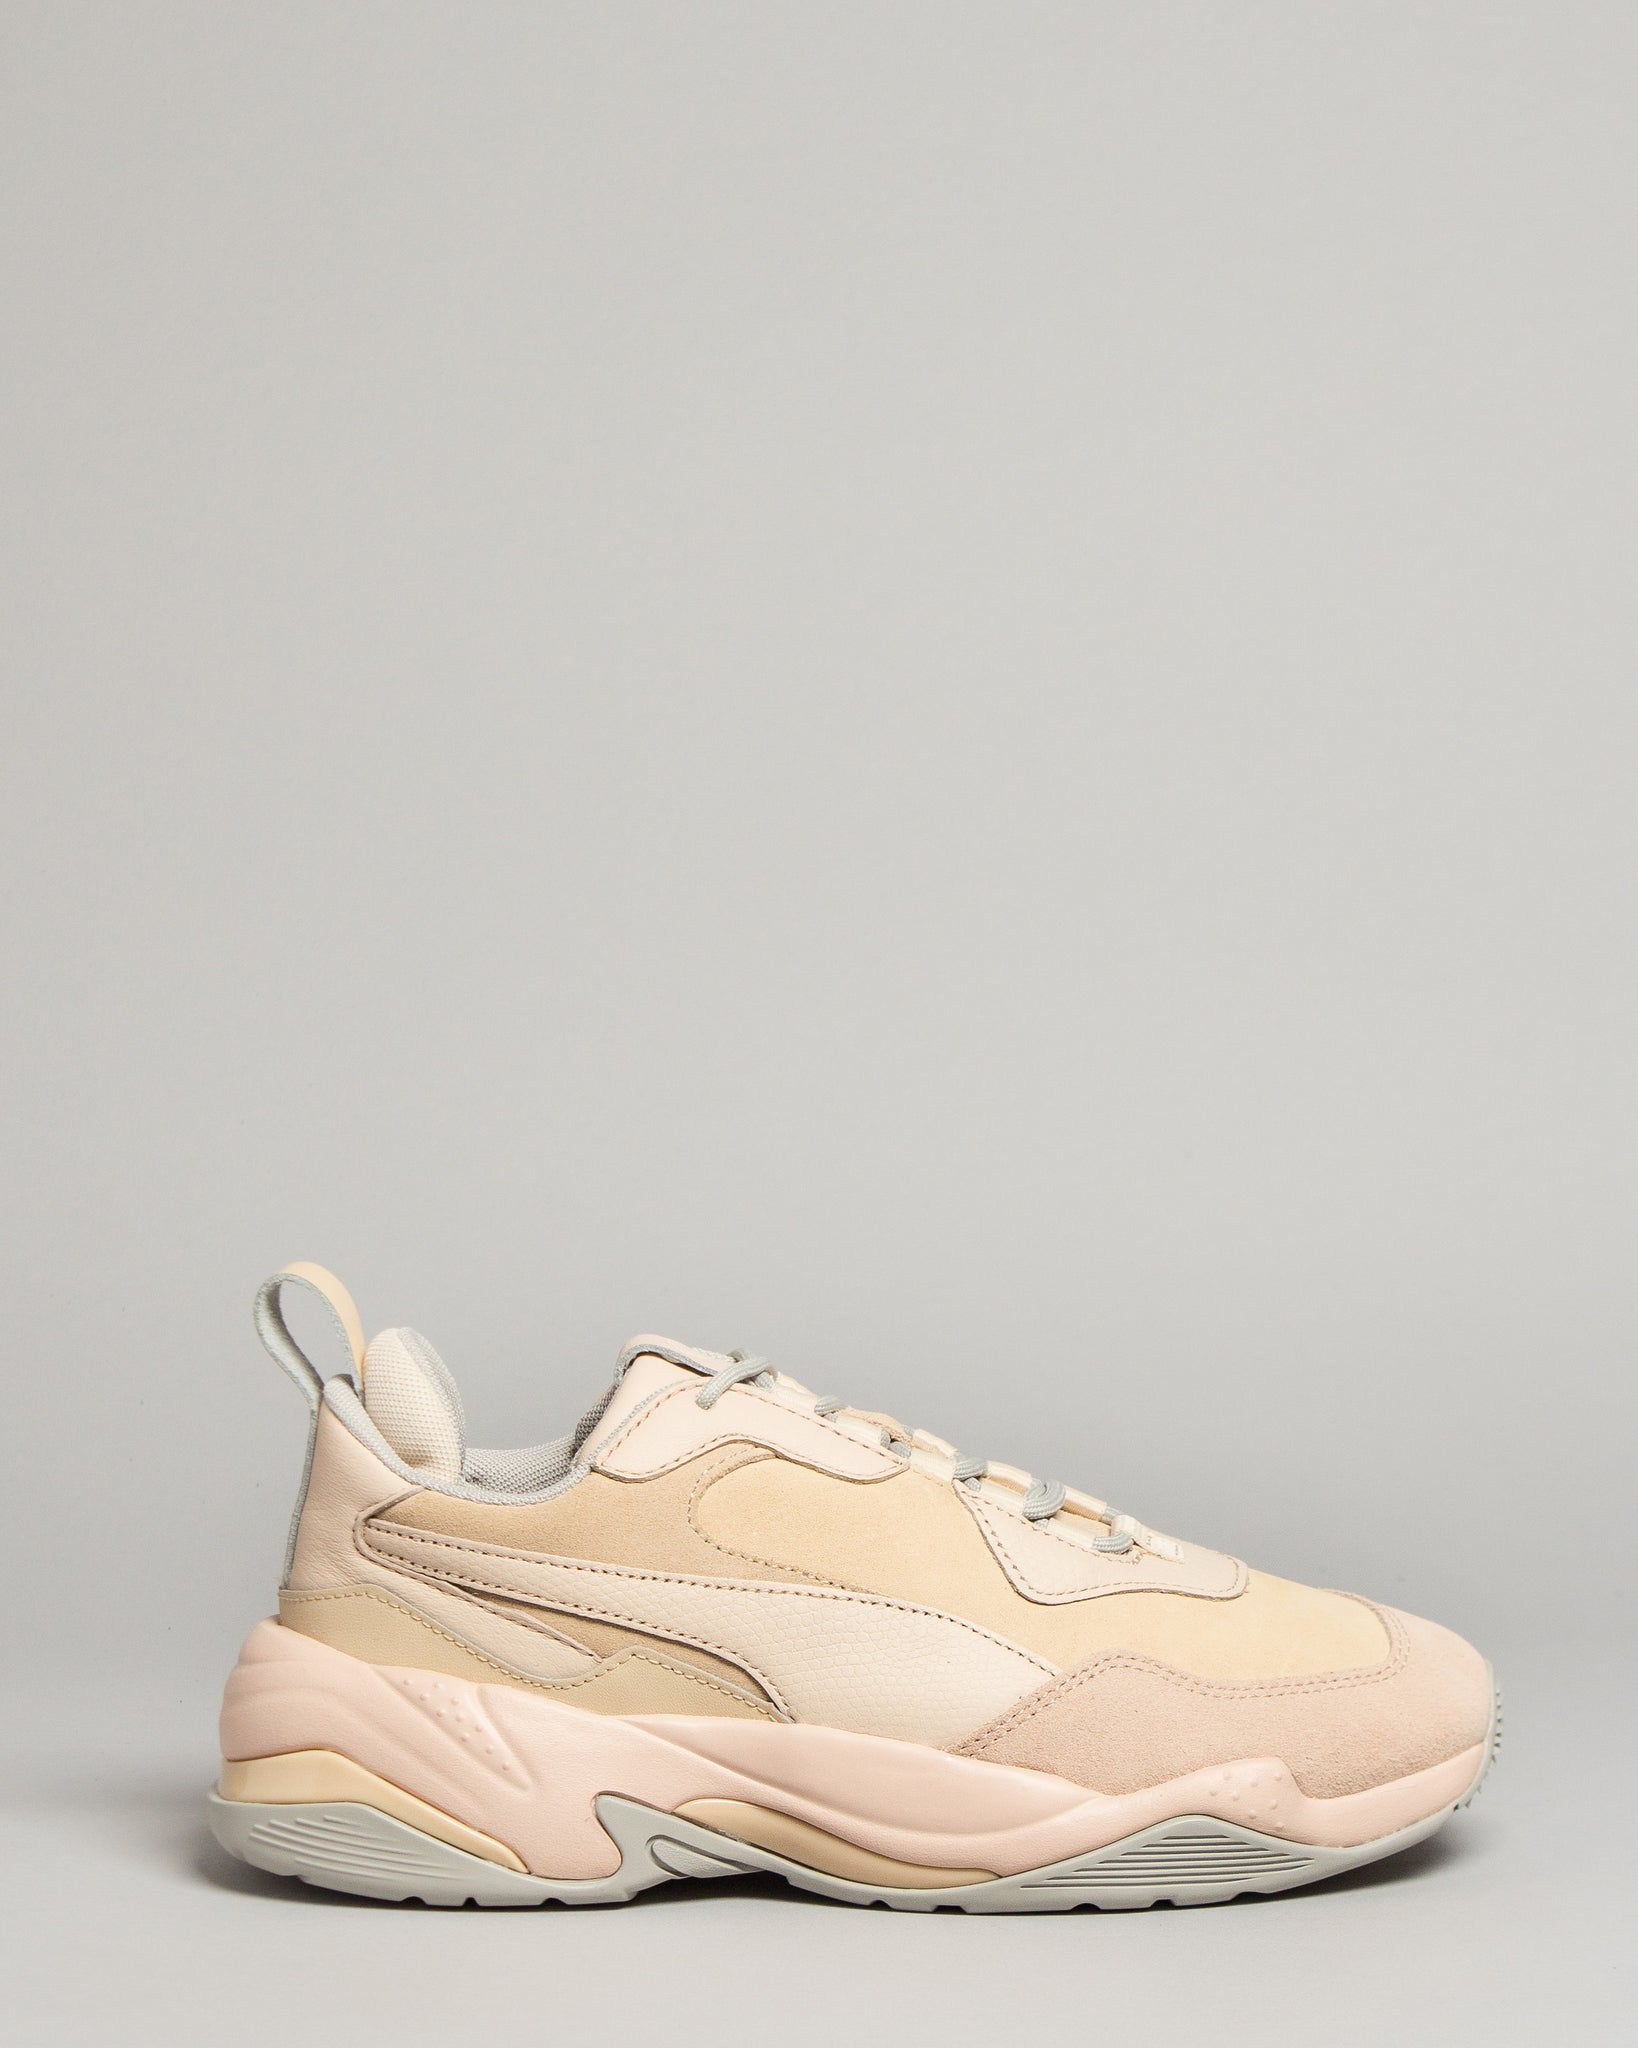 WMNS Thunder Desert Natural Vachetta/Cream Tan